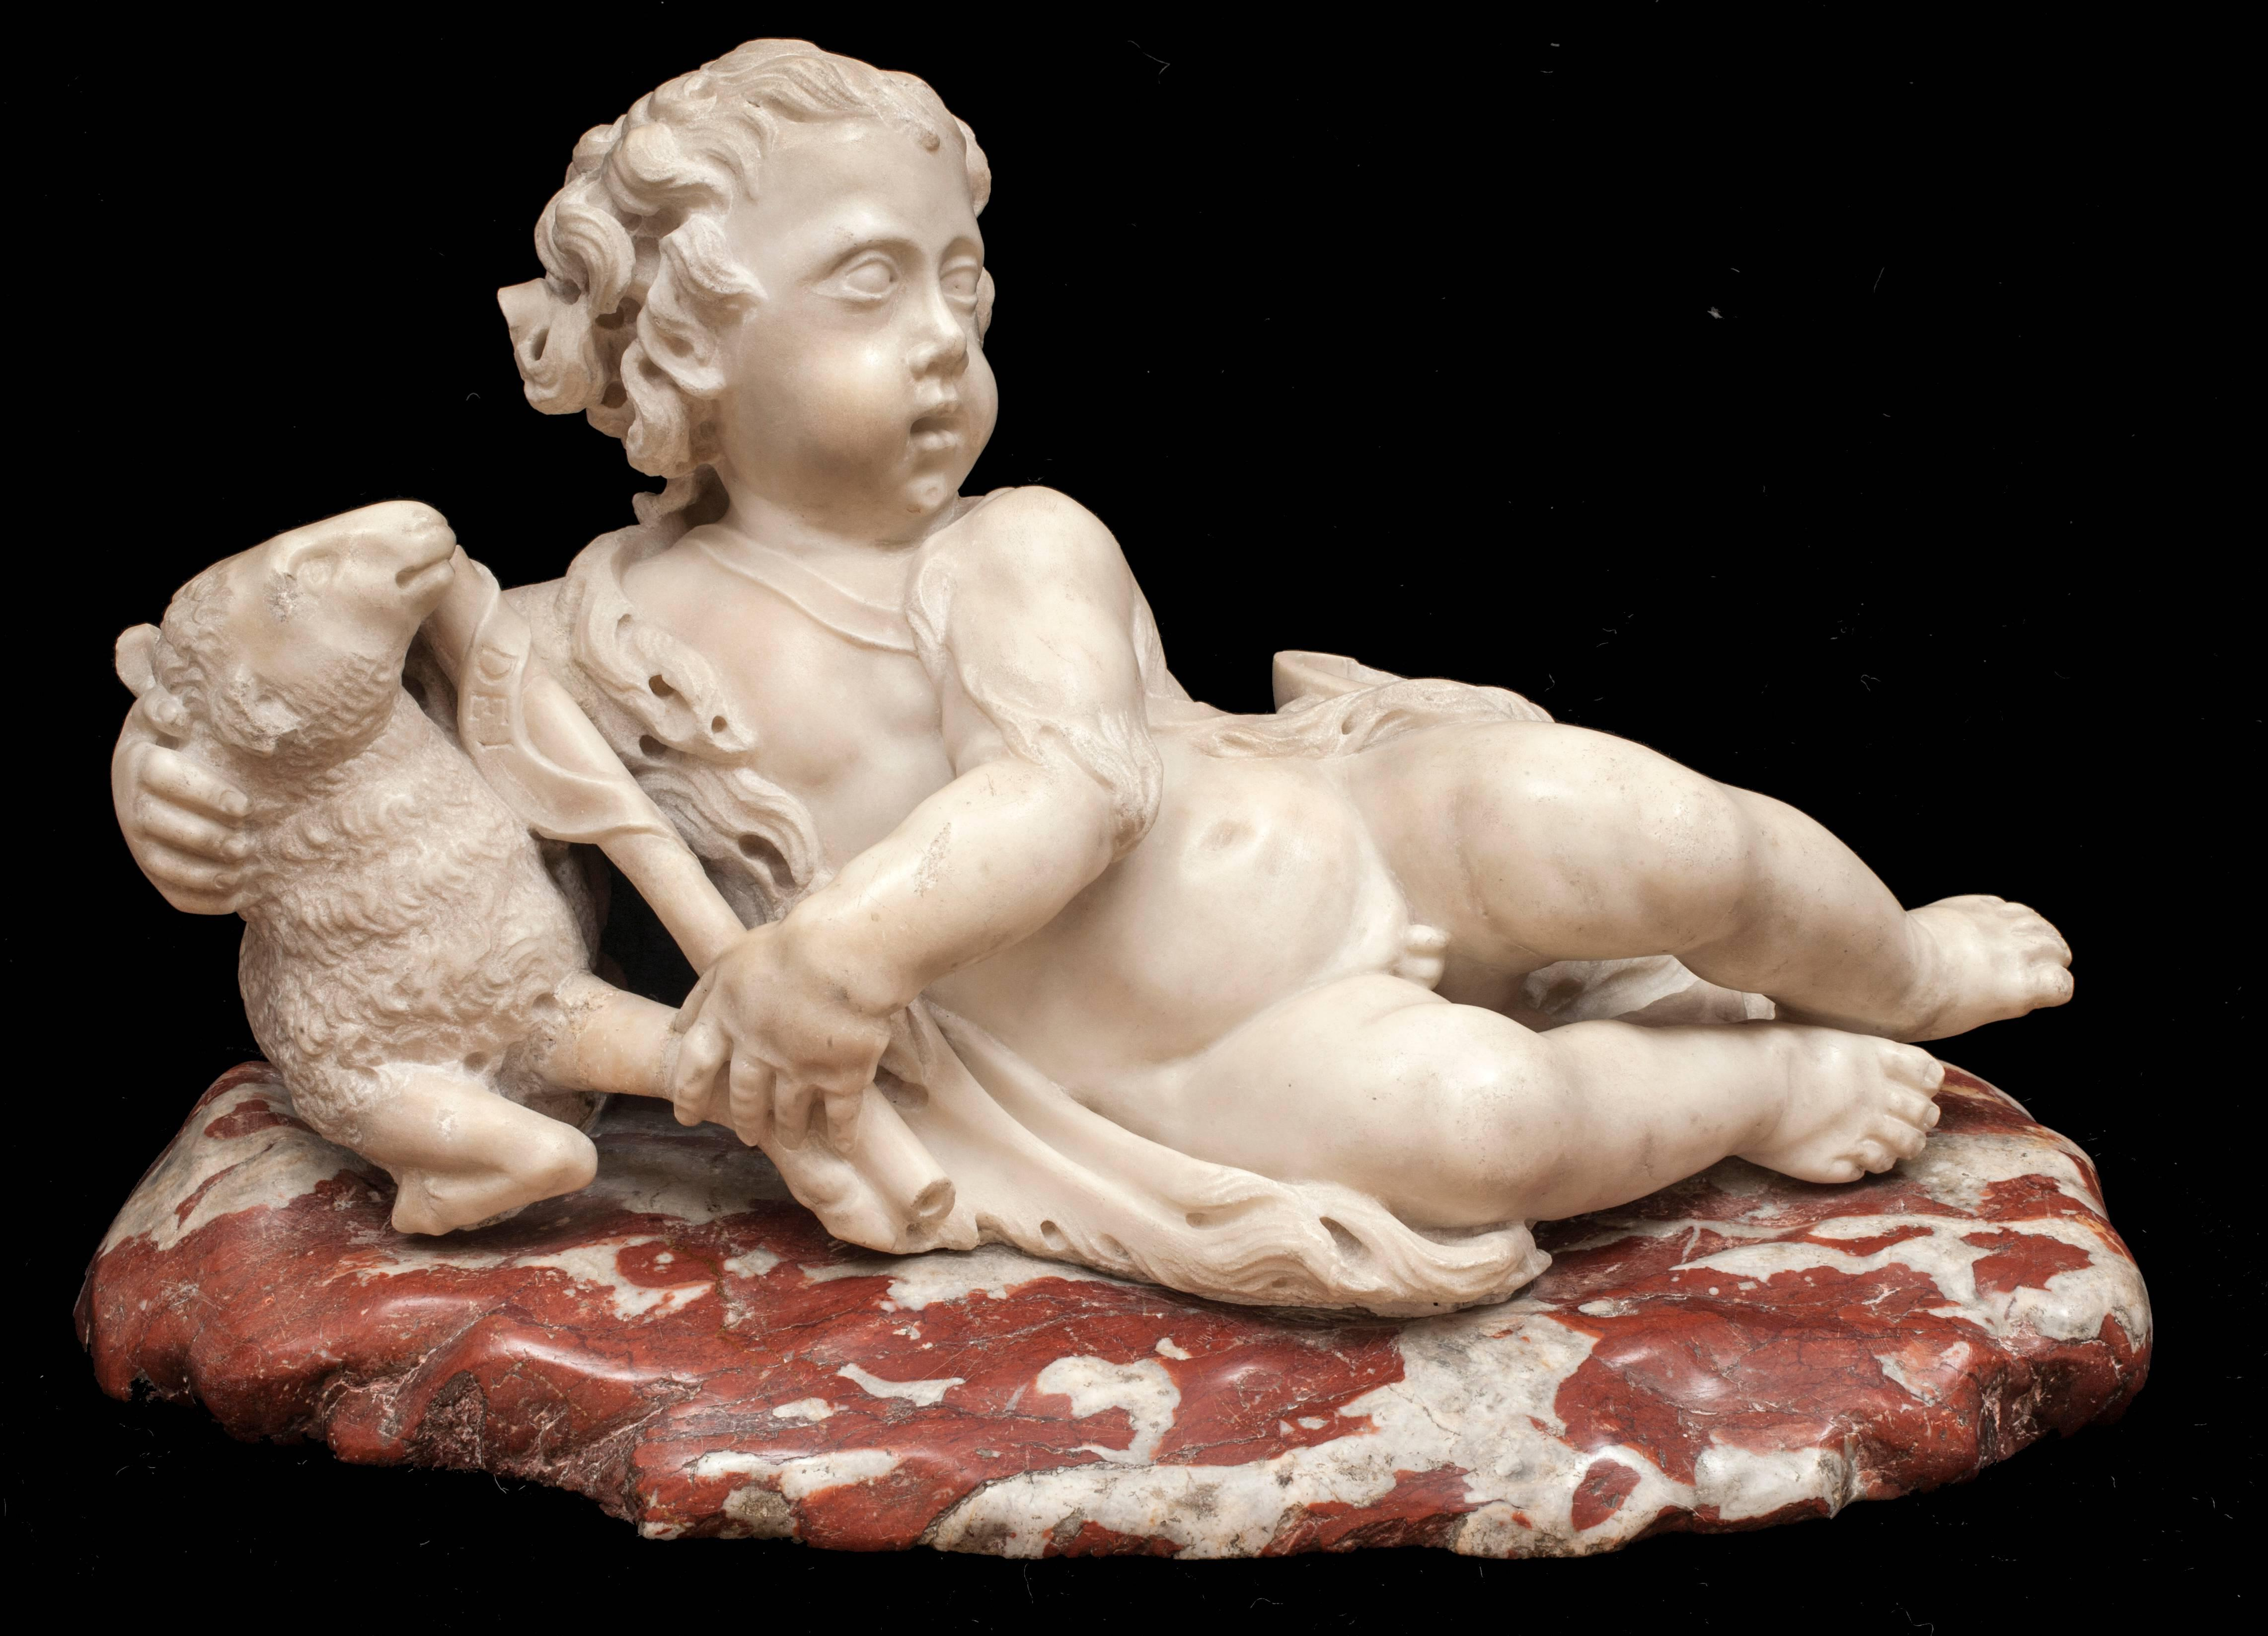 The Infant St. John the Baptist with a Lamb